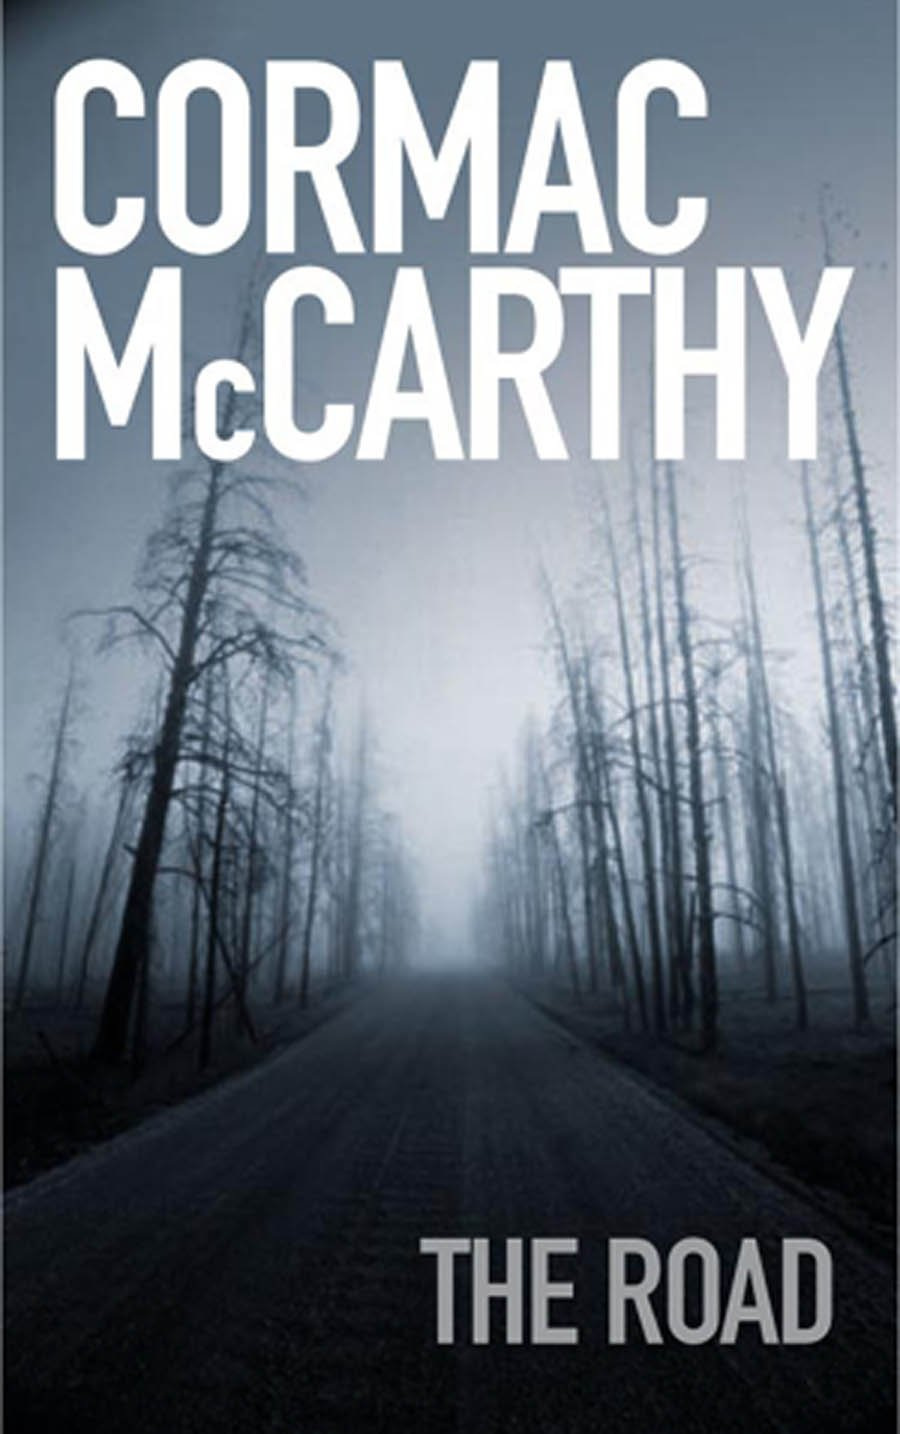 The Road Cormac Mccarthy Pdf